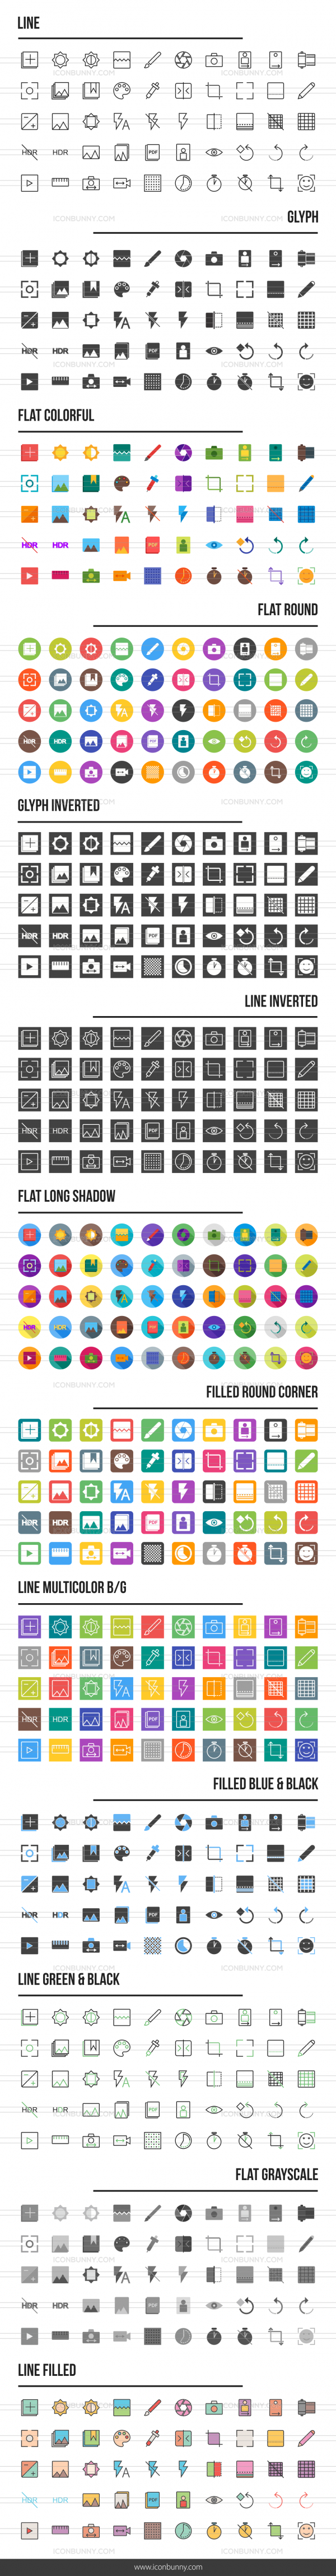 Picture Editing Icons Bundle - Preview - IconBunny